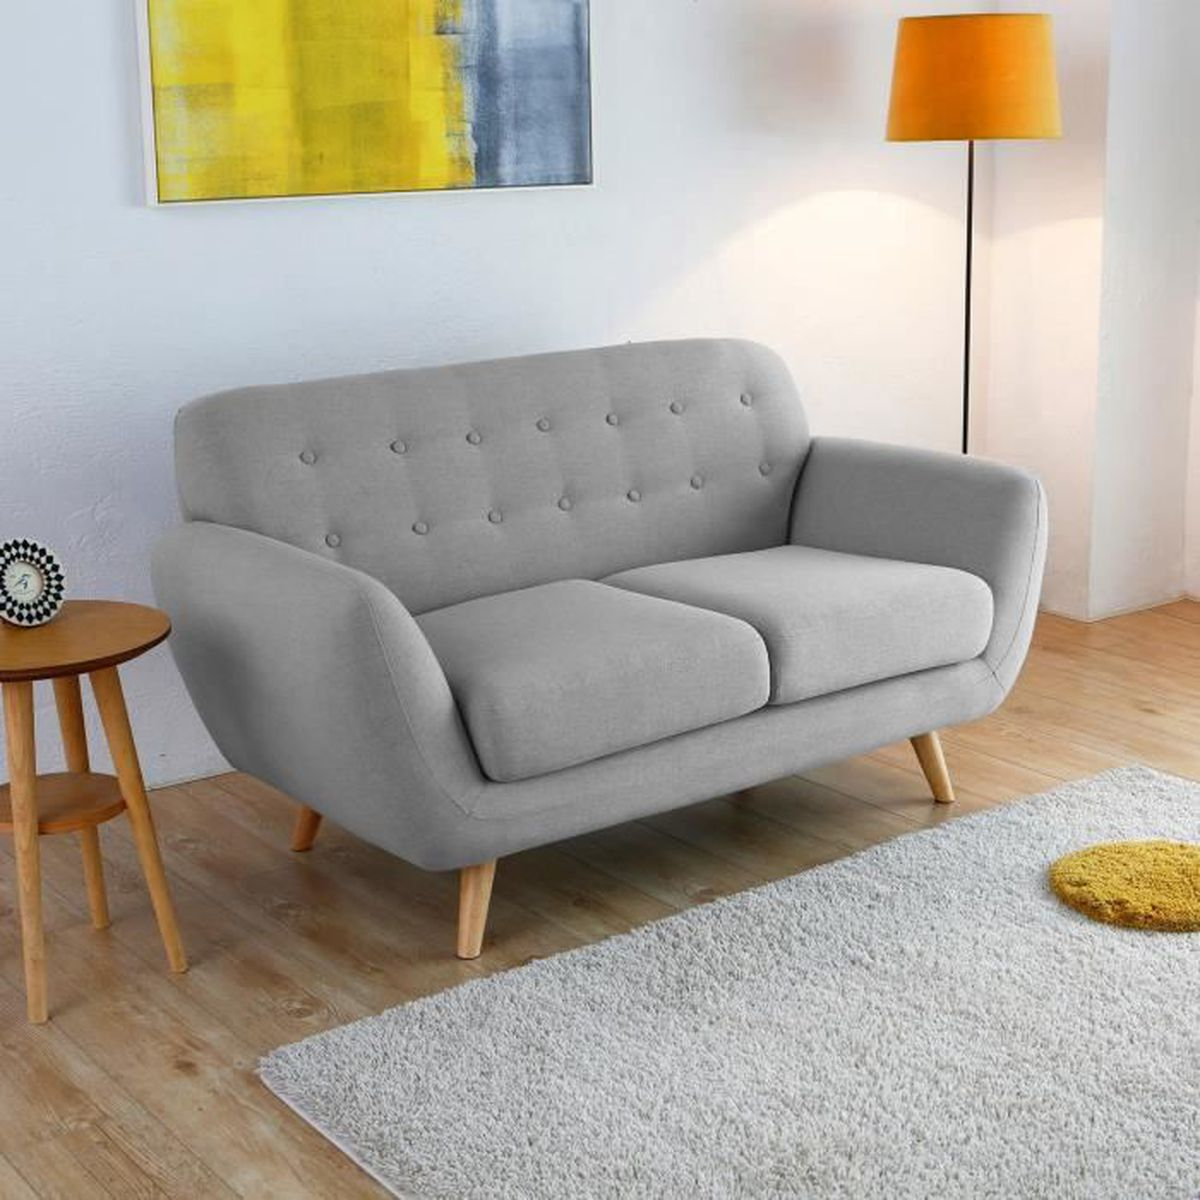 helsinki 2p canap scandinave 2 places gris clair achat vente canap sofa divan. Black Bedroom Furniture Sets. Home Design Ideas